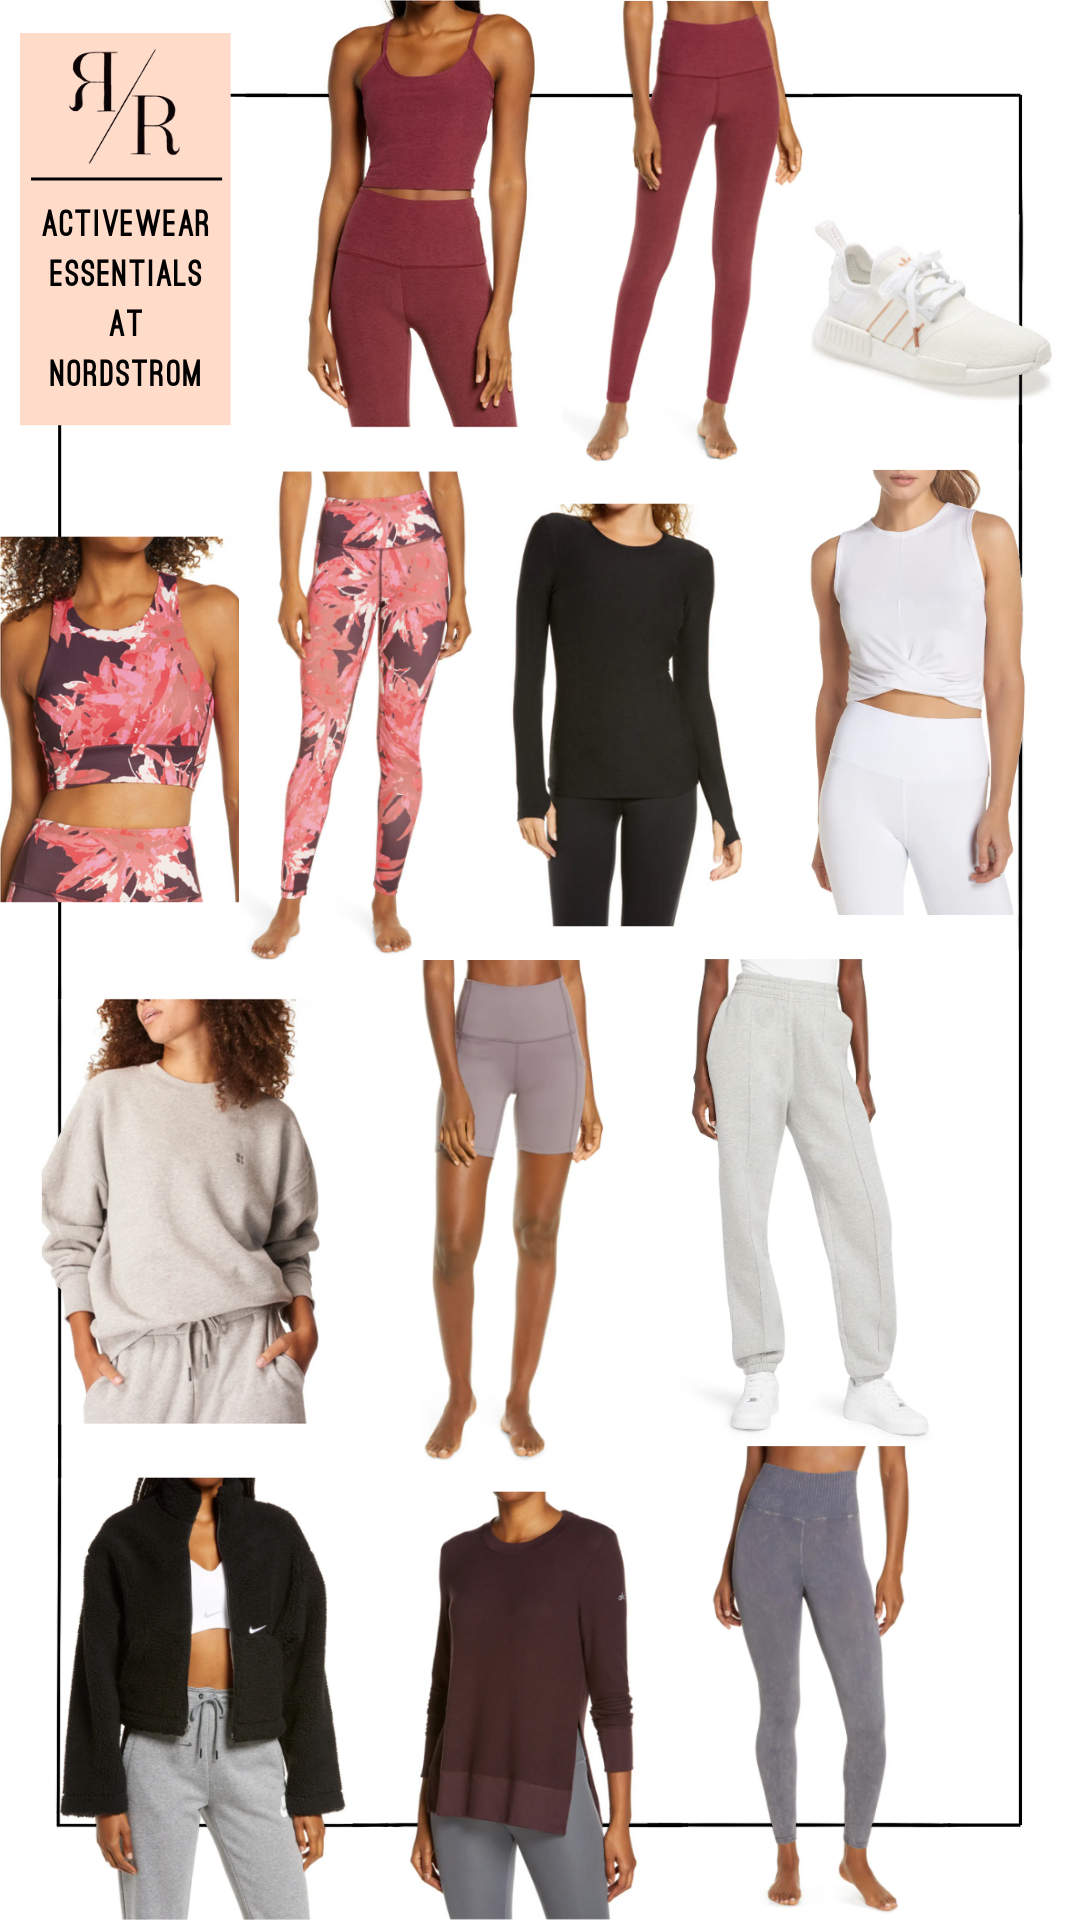 Ruthie Ridley Blog Activewear Essentials From Nordstrom